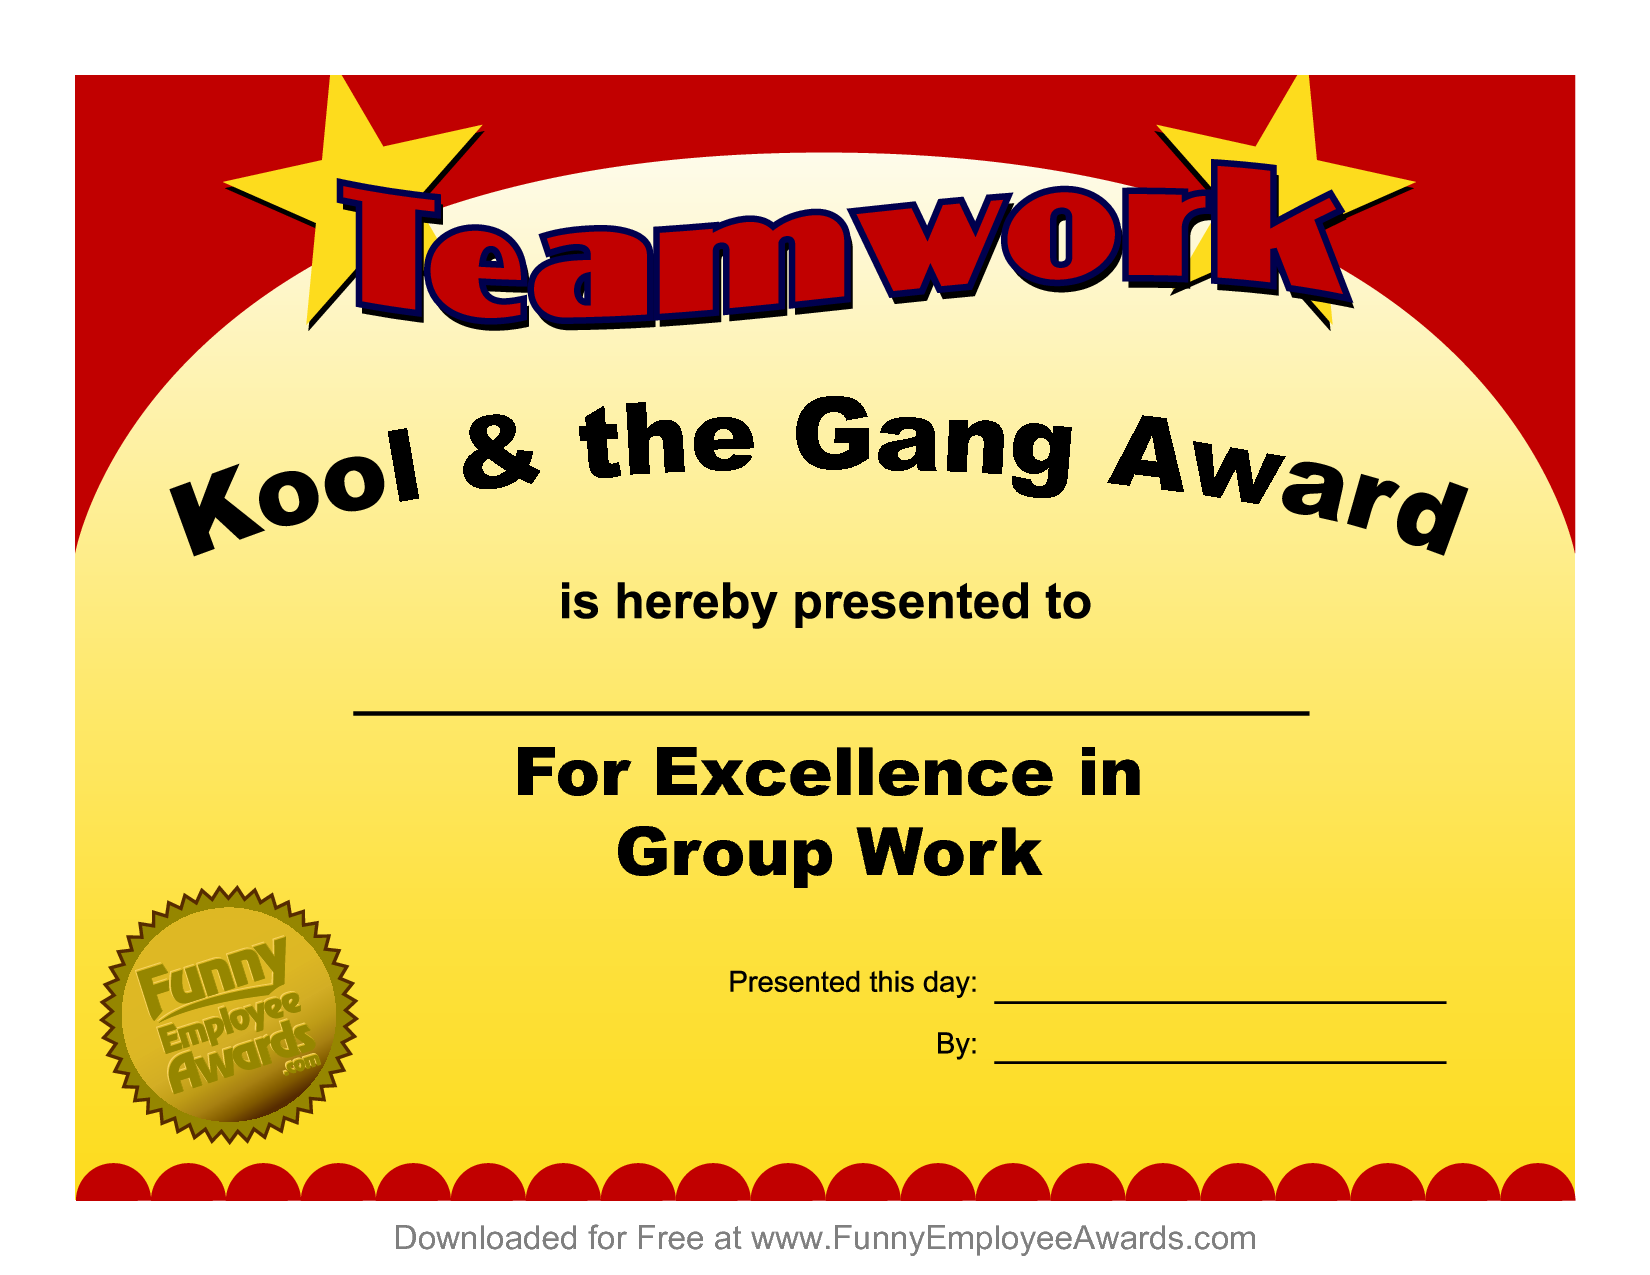 Funny employee awards google search pinteres funny teacher awards and certificates for end of the year school awards ceremonies this list of funny certificates is humorous fun and provides great 1betcityfo Image collections